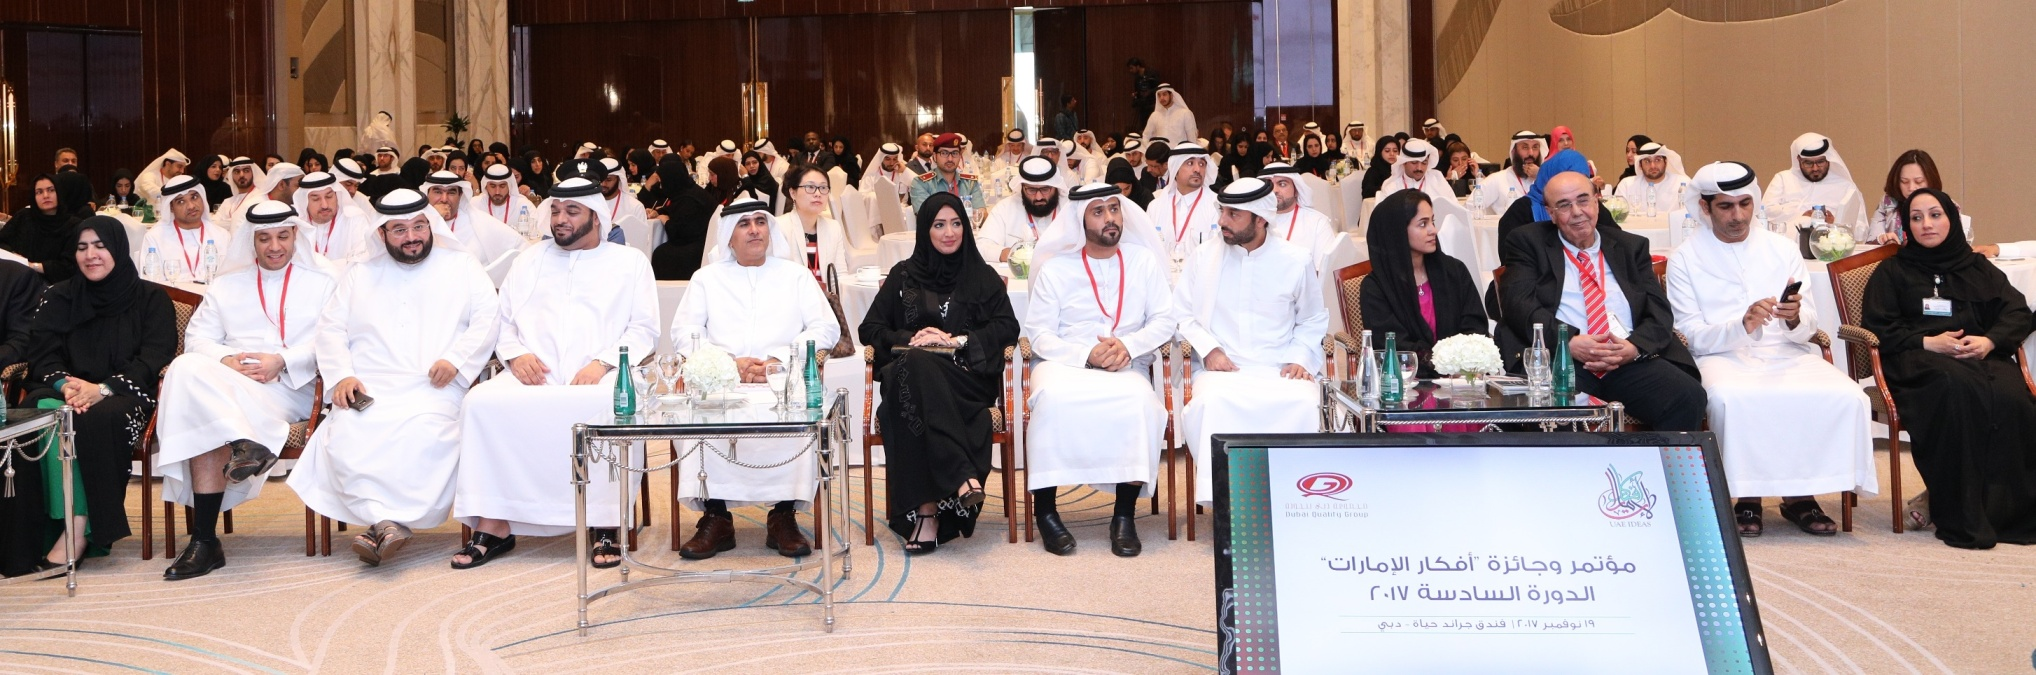 6th UAE Ideas Conference & Award 2017